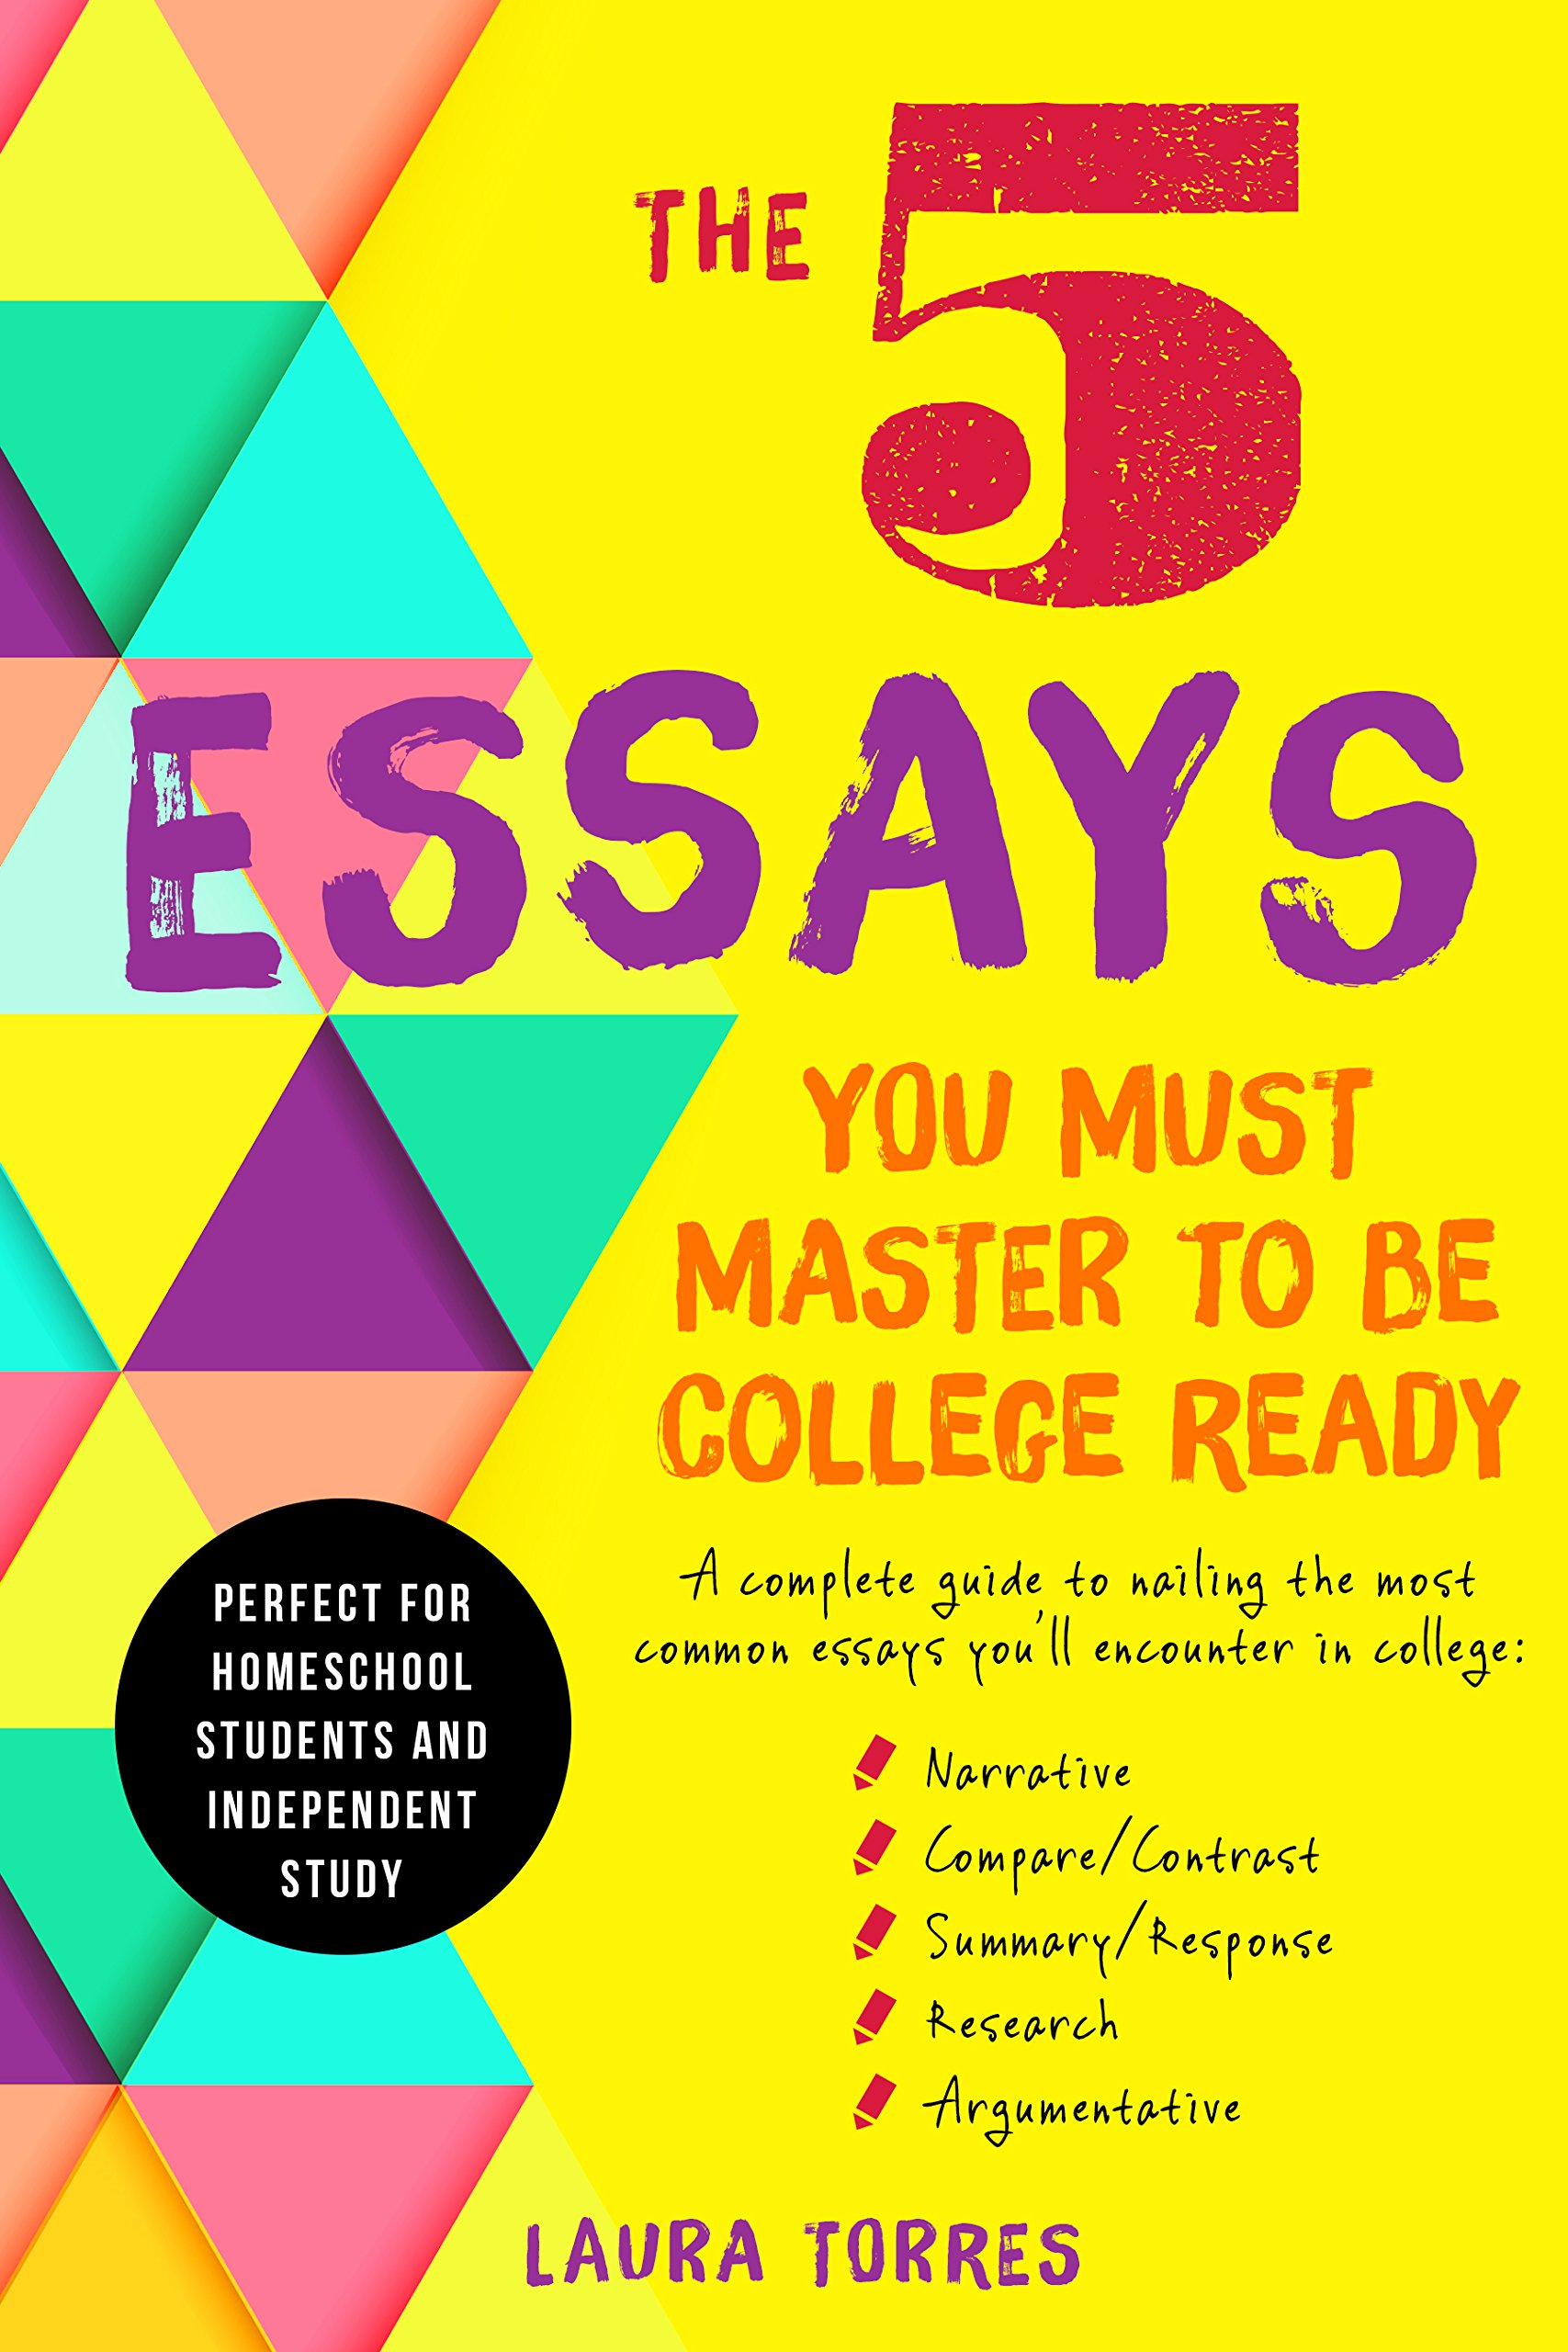 5 Essays You Must Master To Be College Ready: A Complete Guide to Nailing the Most Common Essays You'll Encounter In College